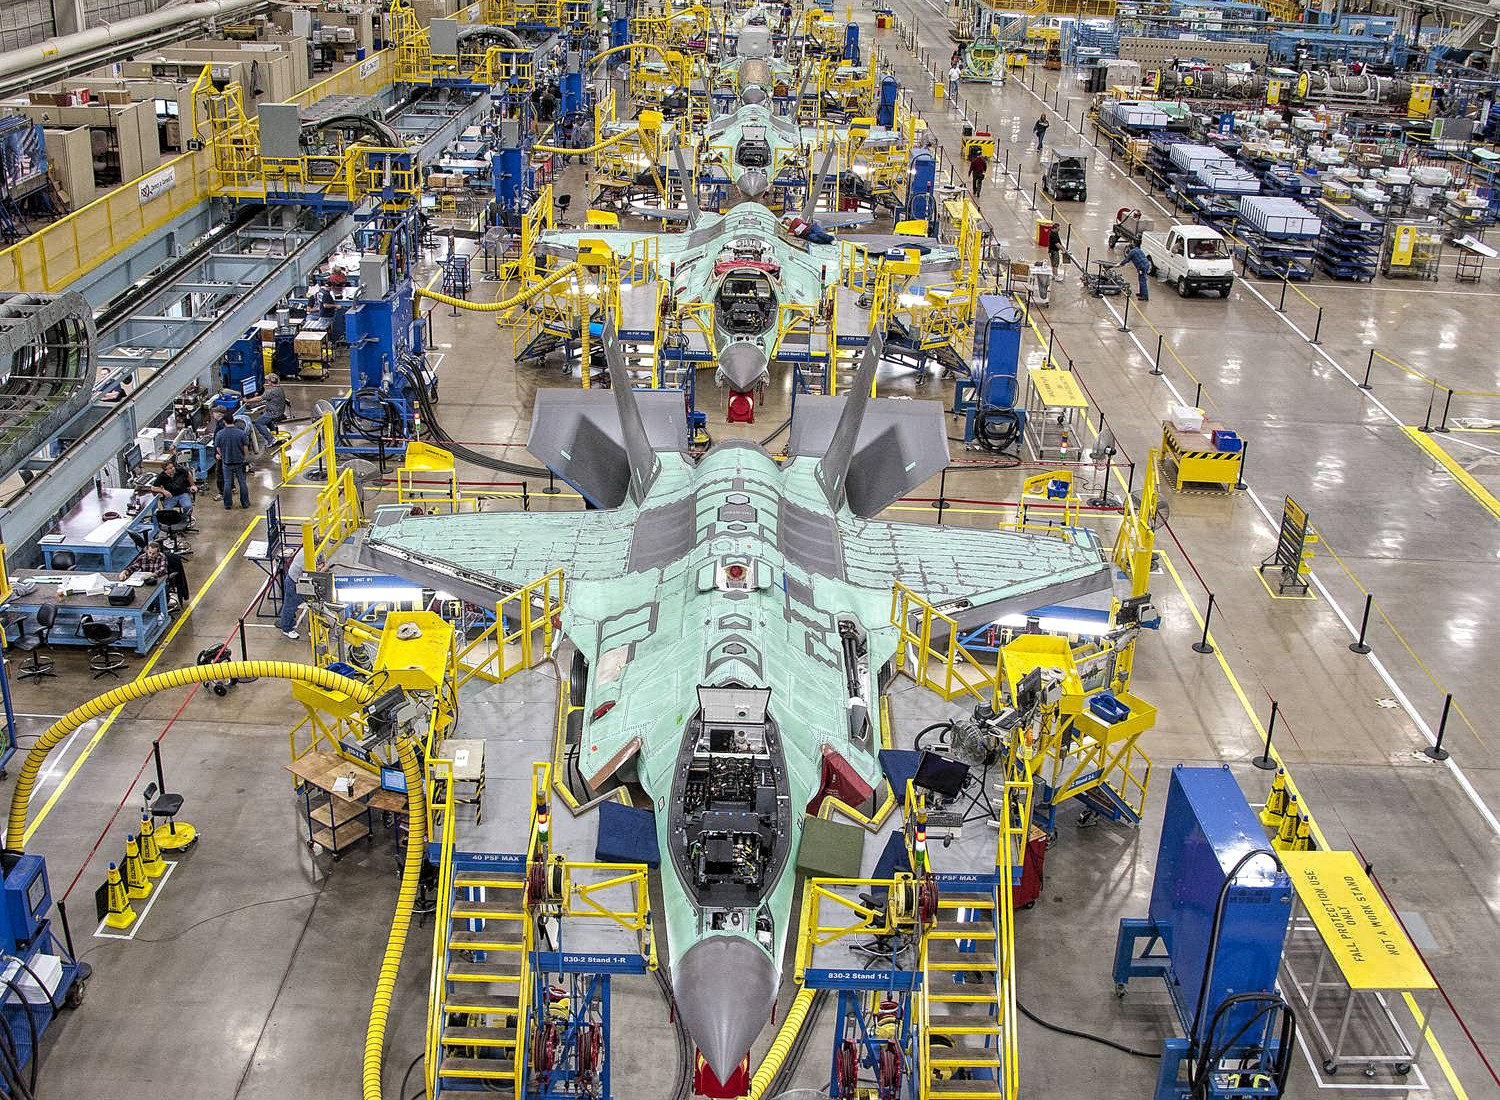 f-35_production_line.jpg